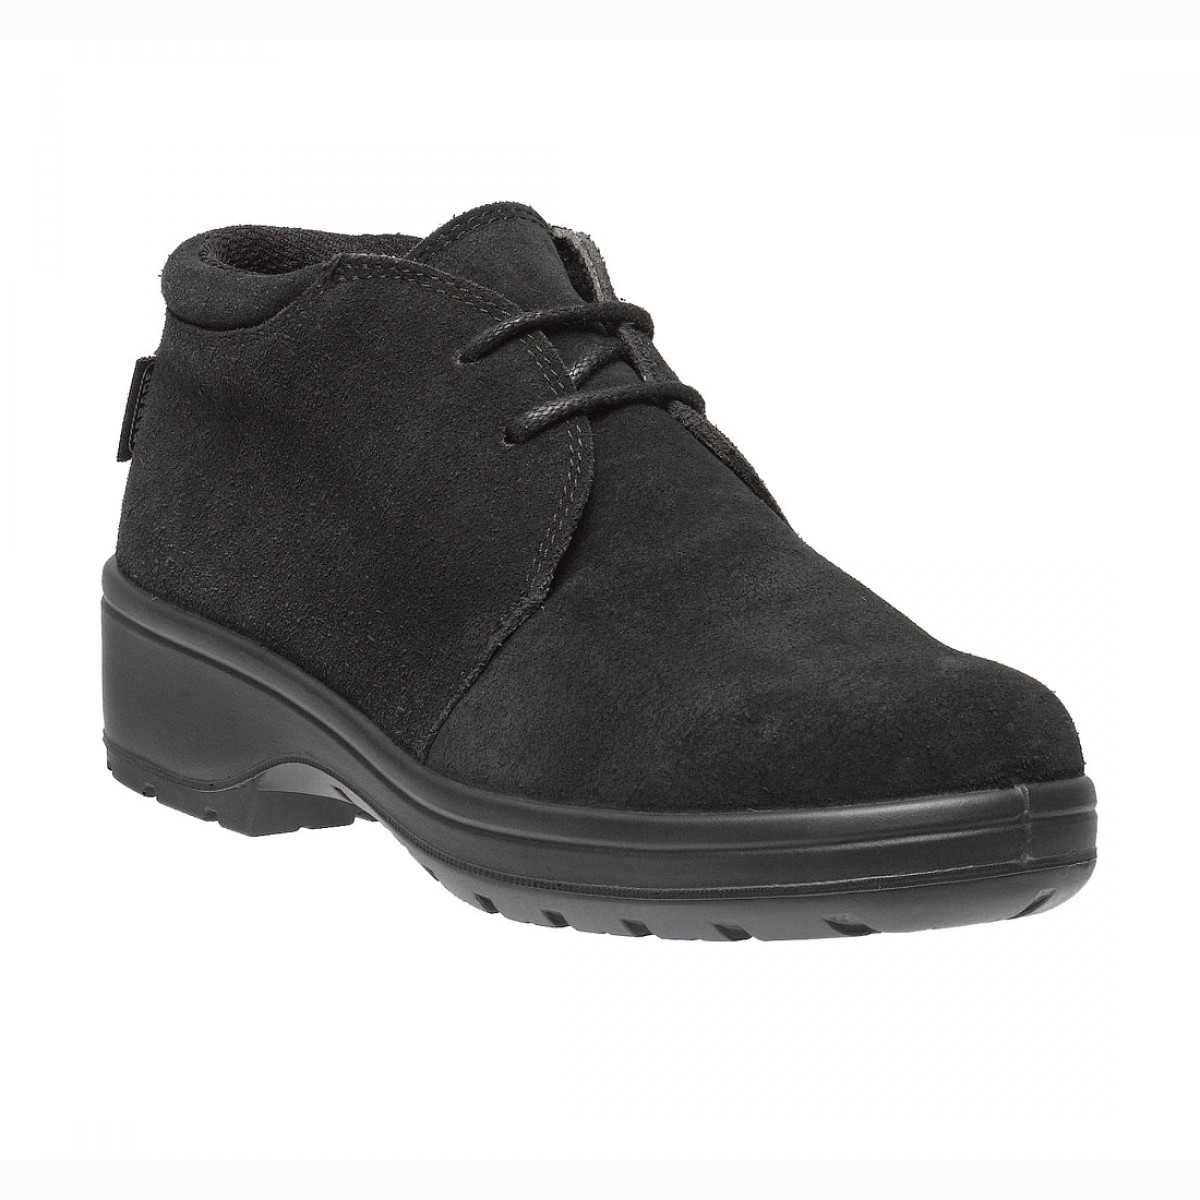 13b61e54fcd Lavoro Geena ESD Black Nubuck Leather Steel Toe Cap Ladies Safety Boots